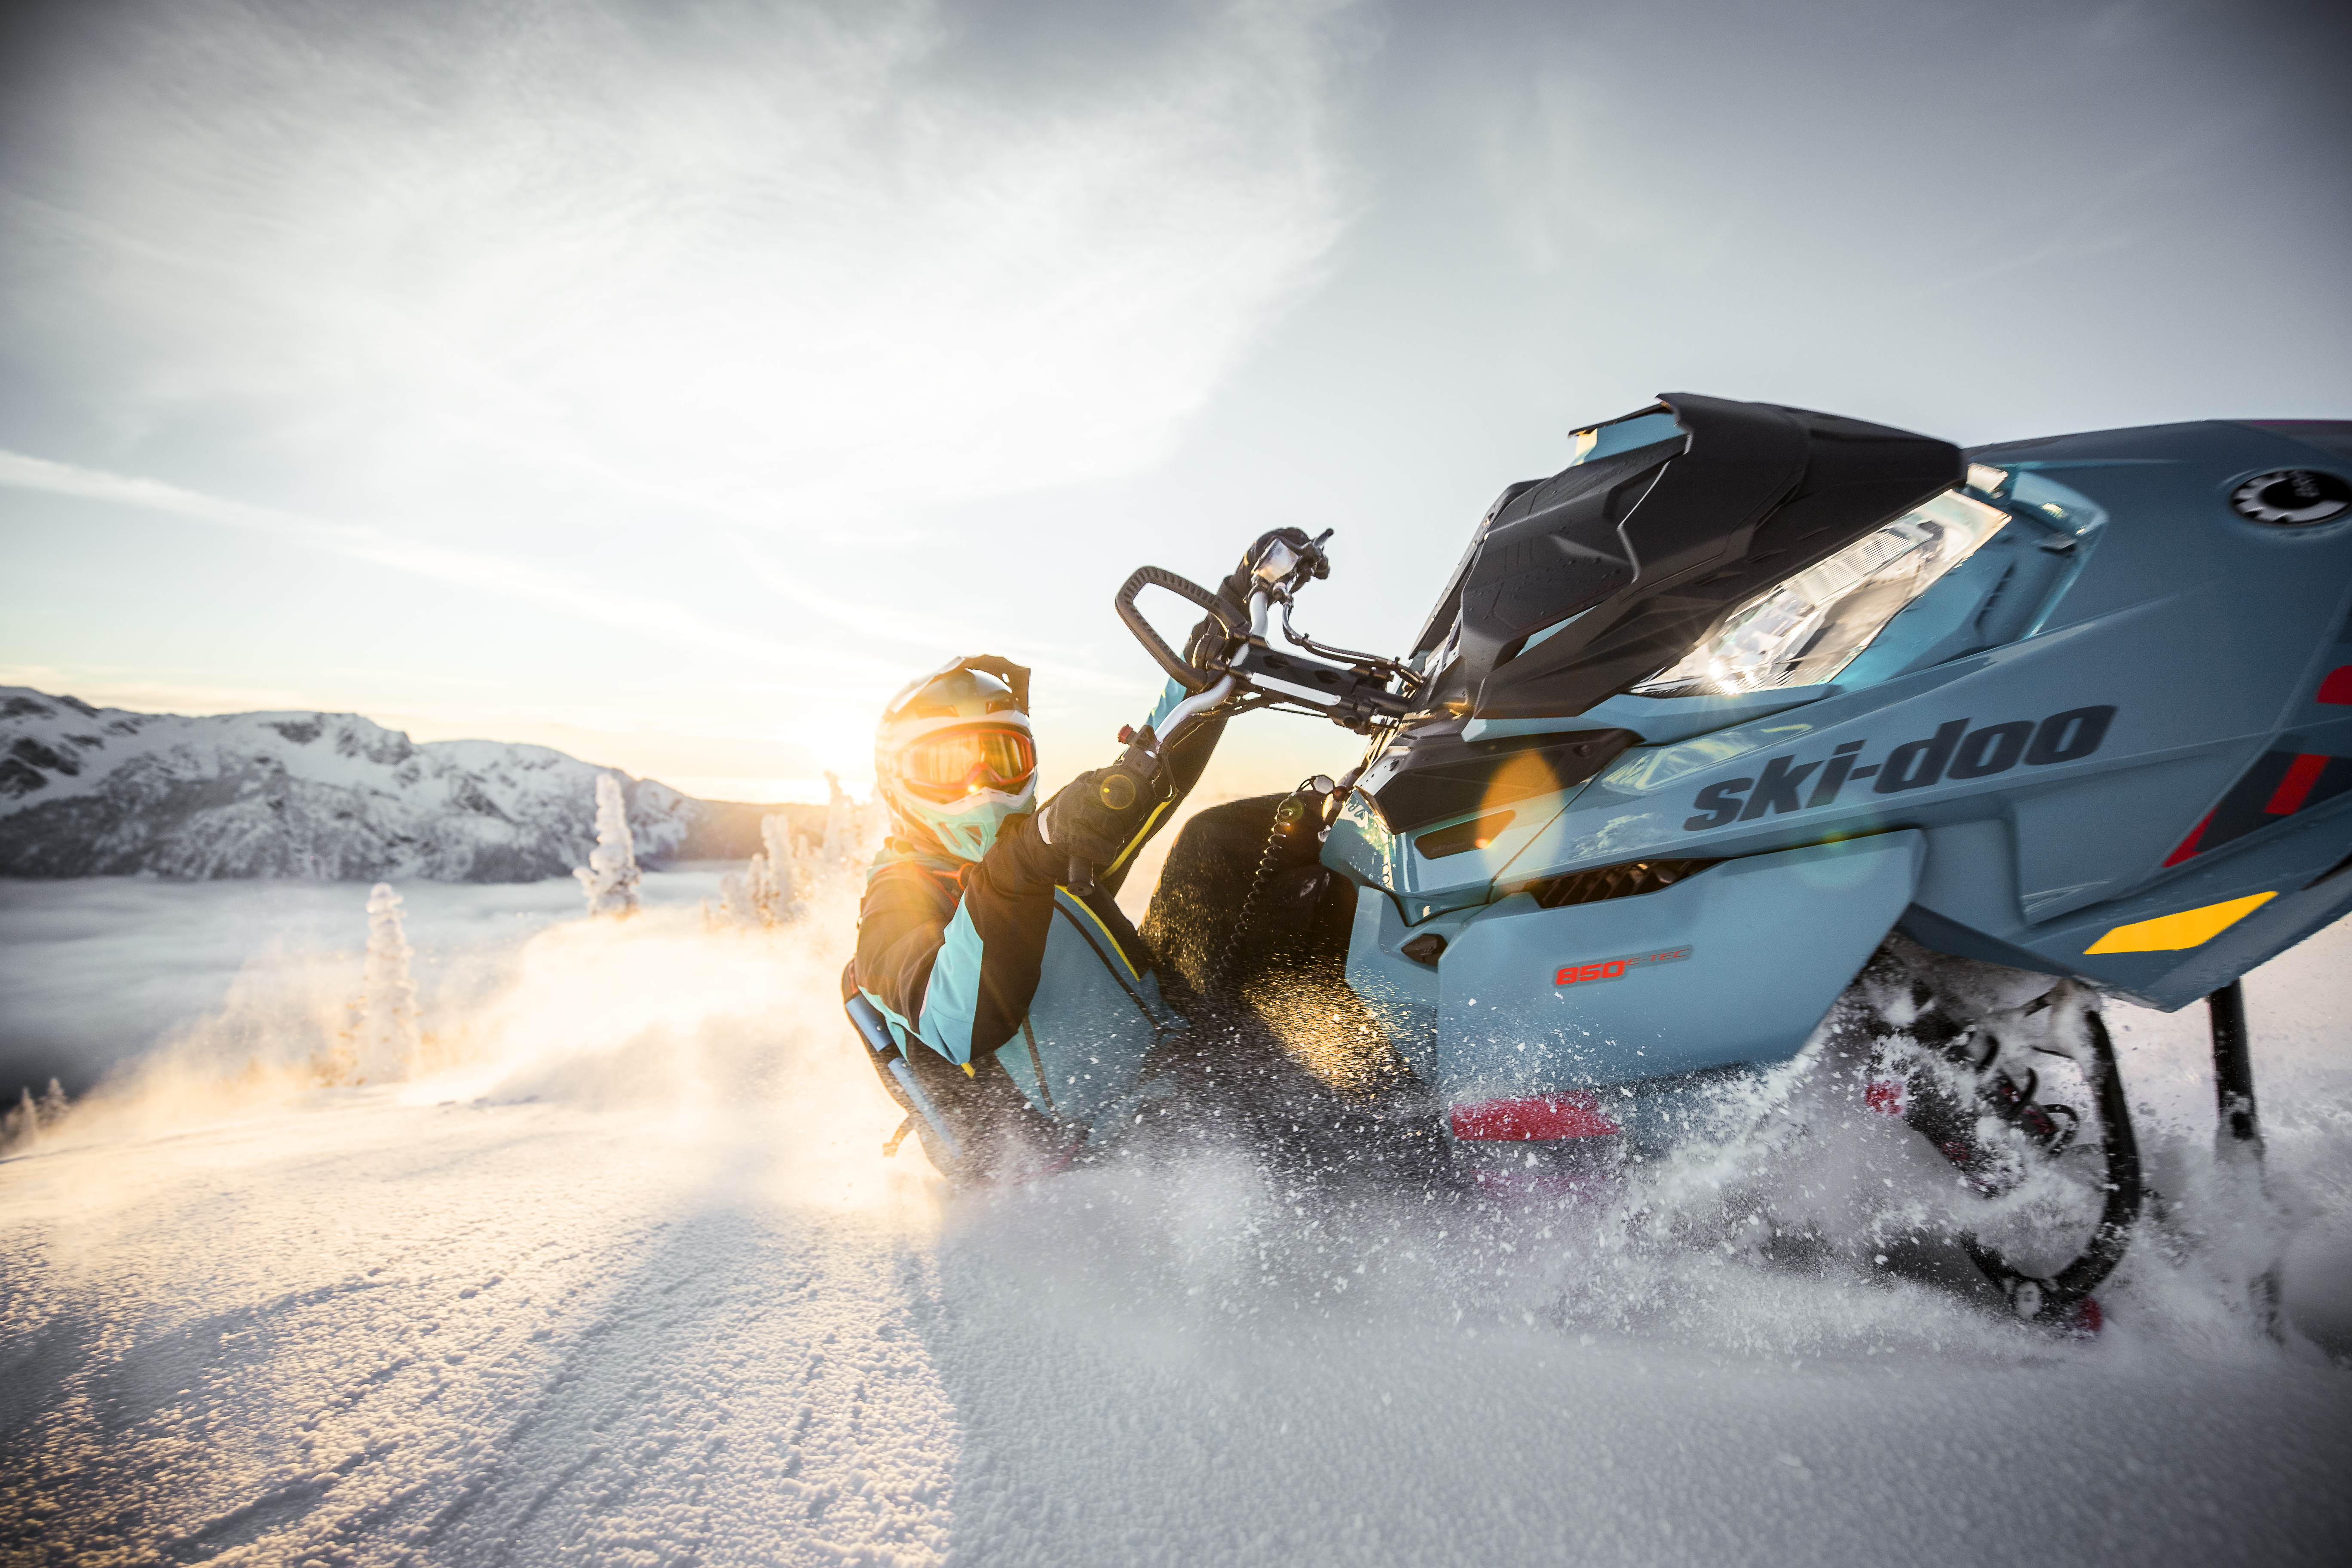 Leaning into the turn on a Ski-Doo snowmobile